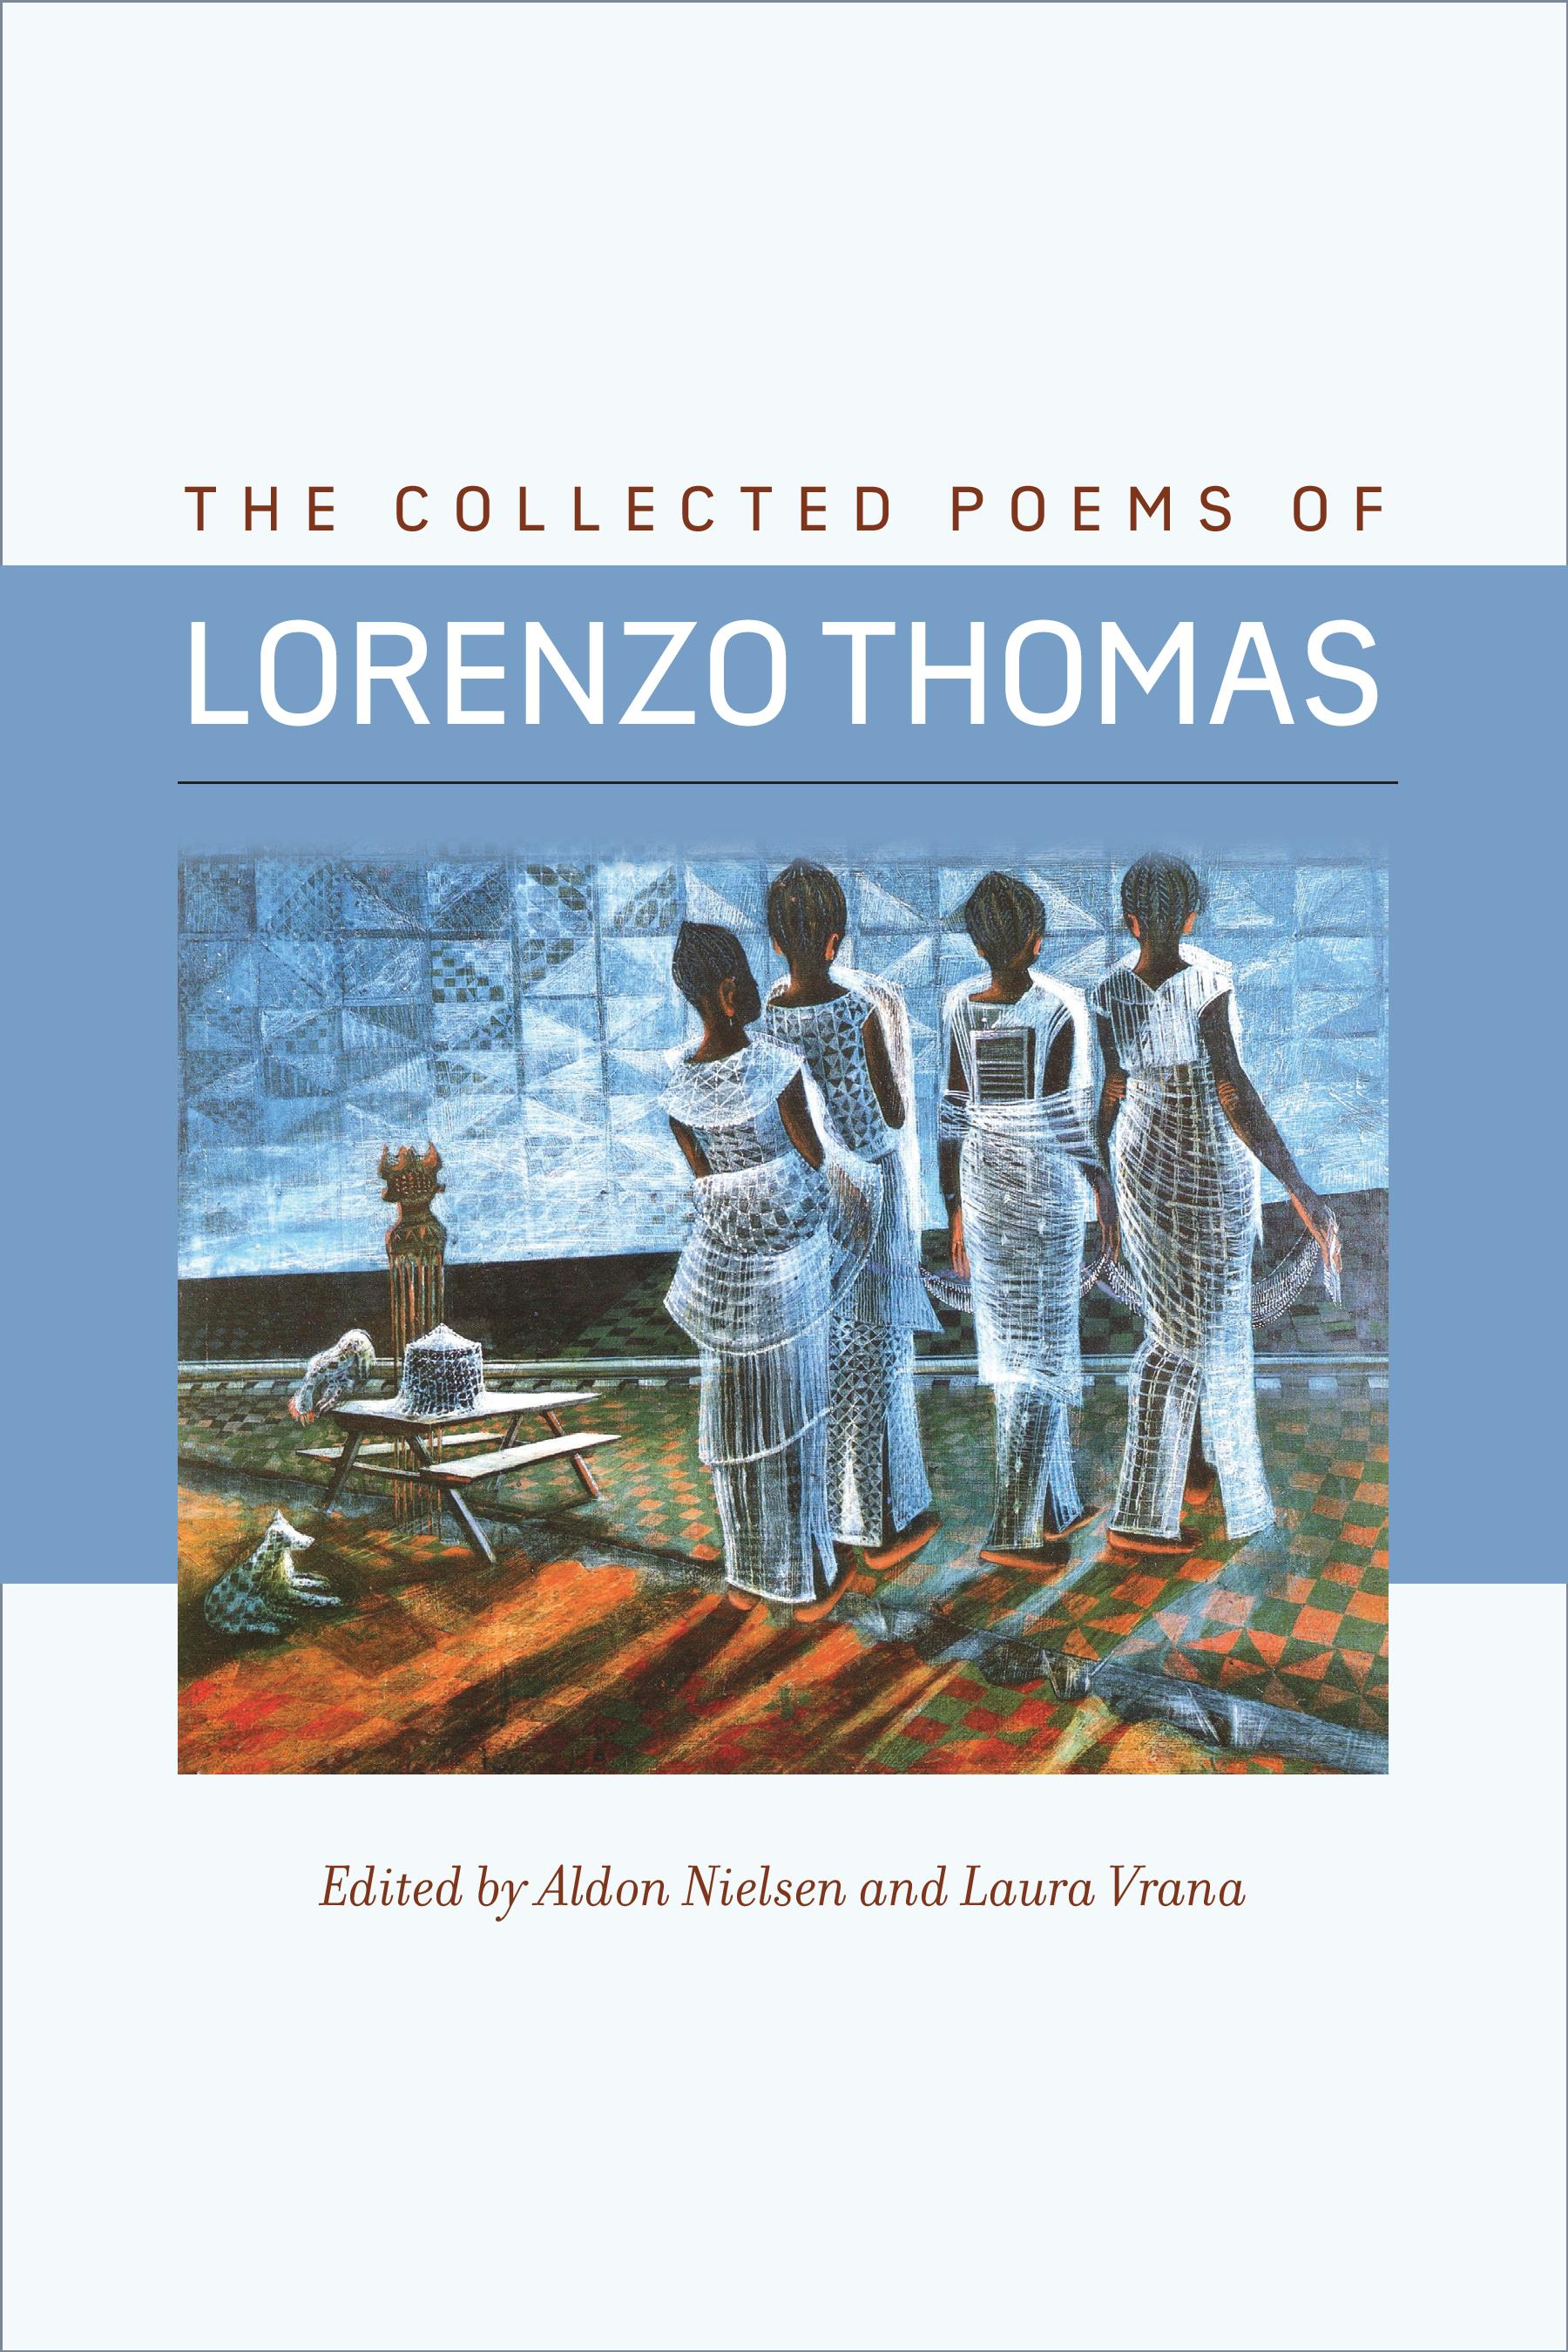 Aldon Nielsen Presents The Collected Poems of Lorenzo Thomas